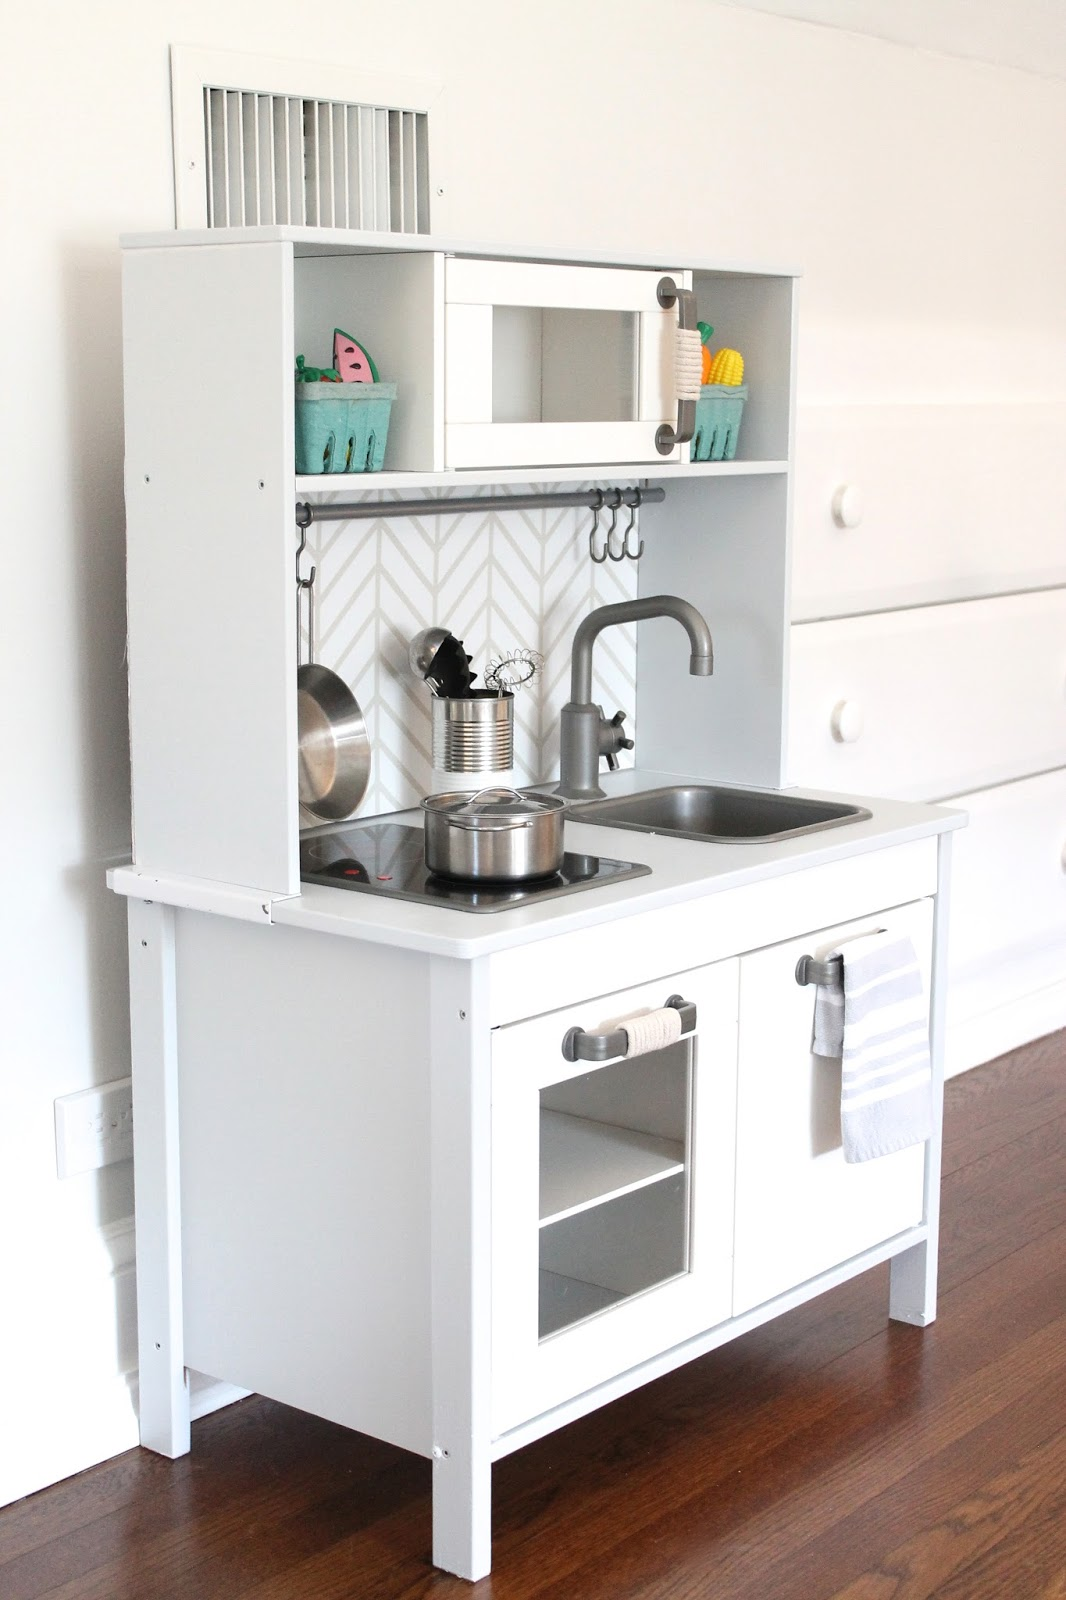 the picket fence projects: Kiddie kitchen renovation